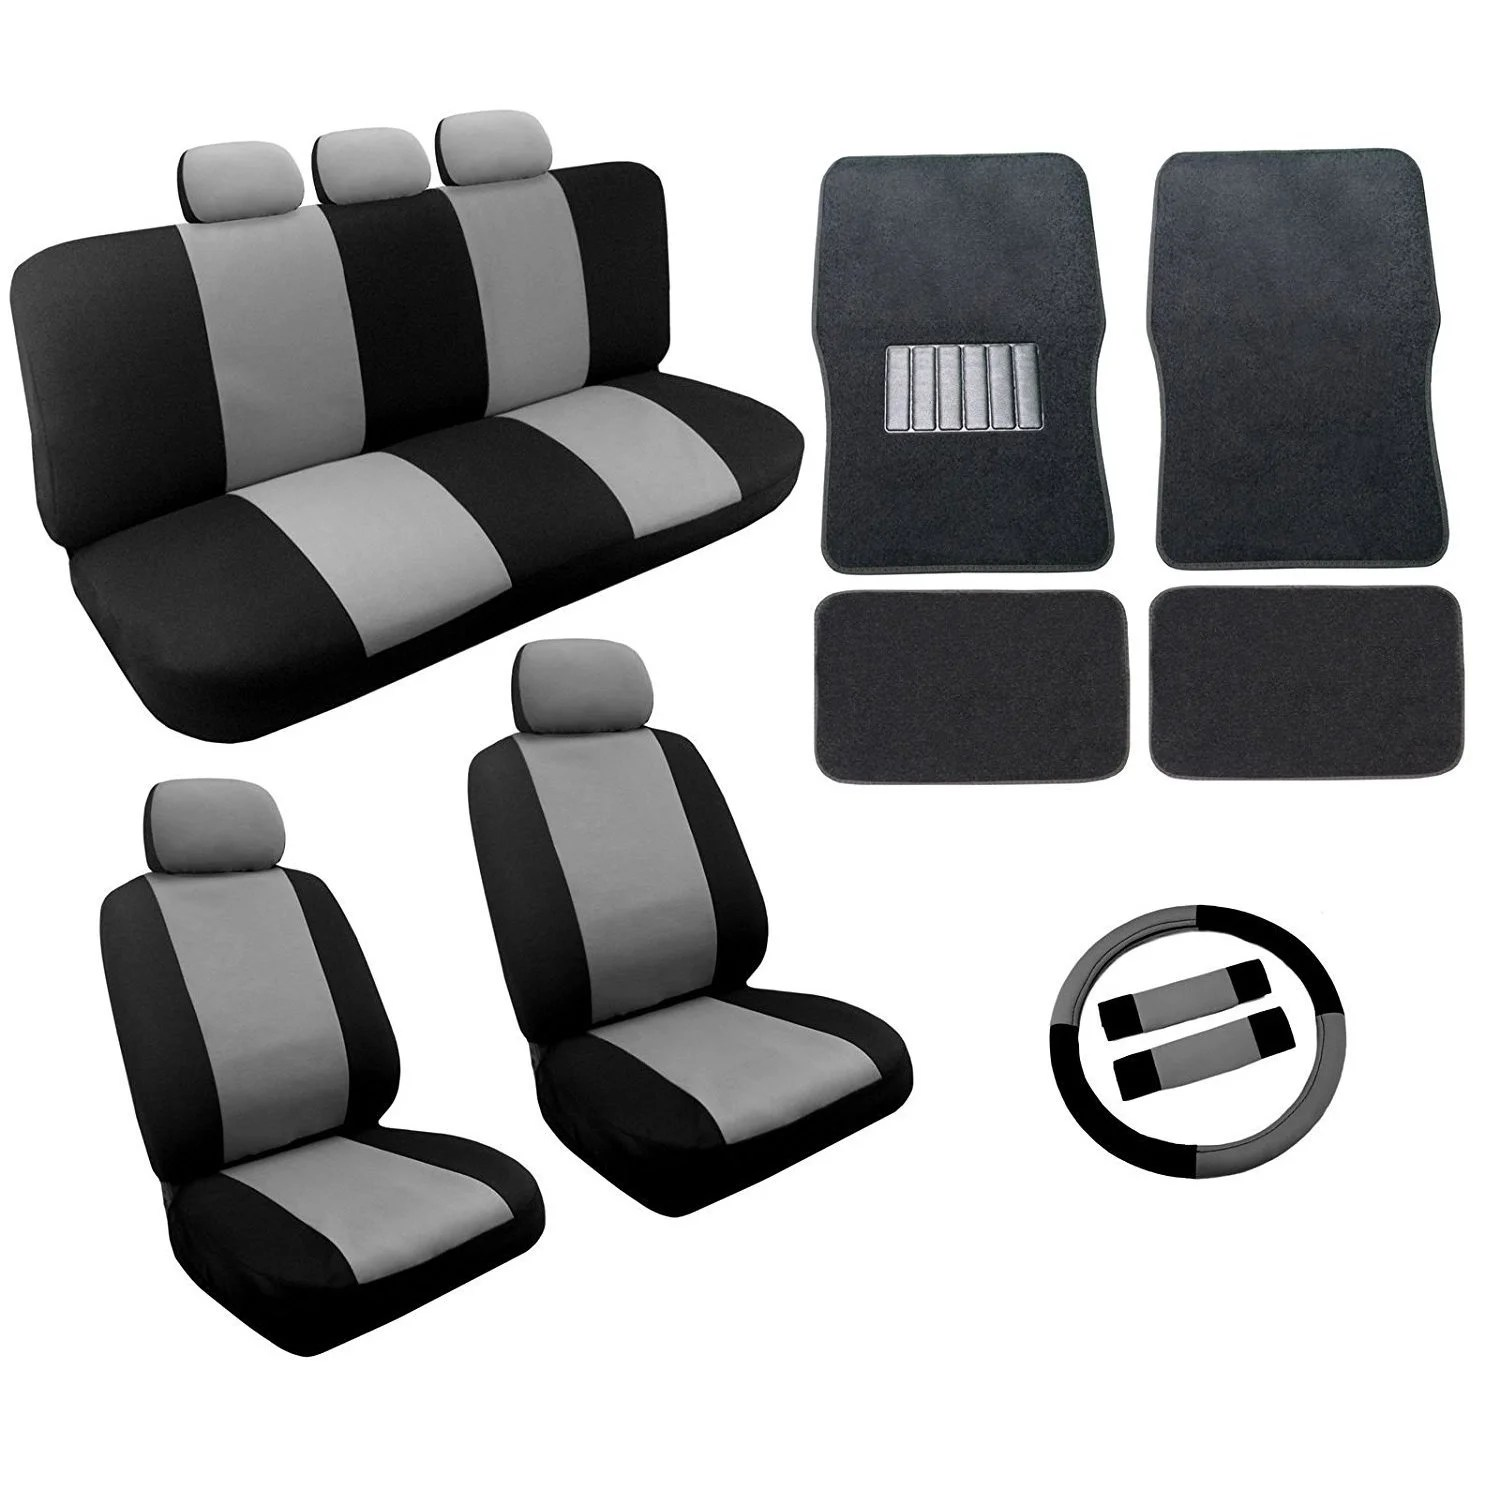 office chair seat covers black desk armrest shop gray two tone car mats set 18pc nissan versa free shipping today overstock com 18695353